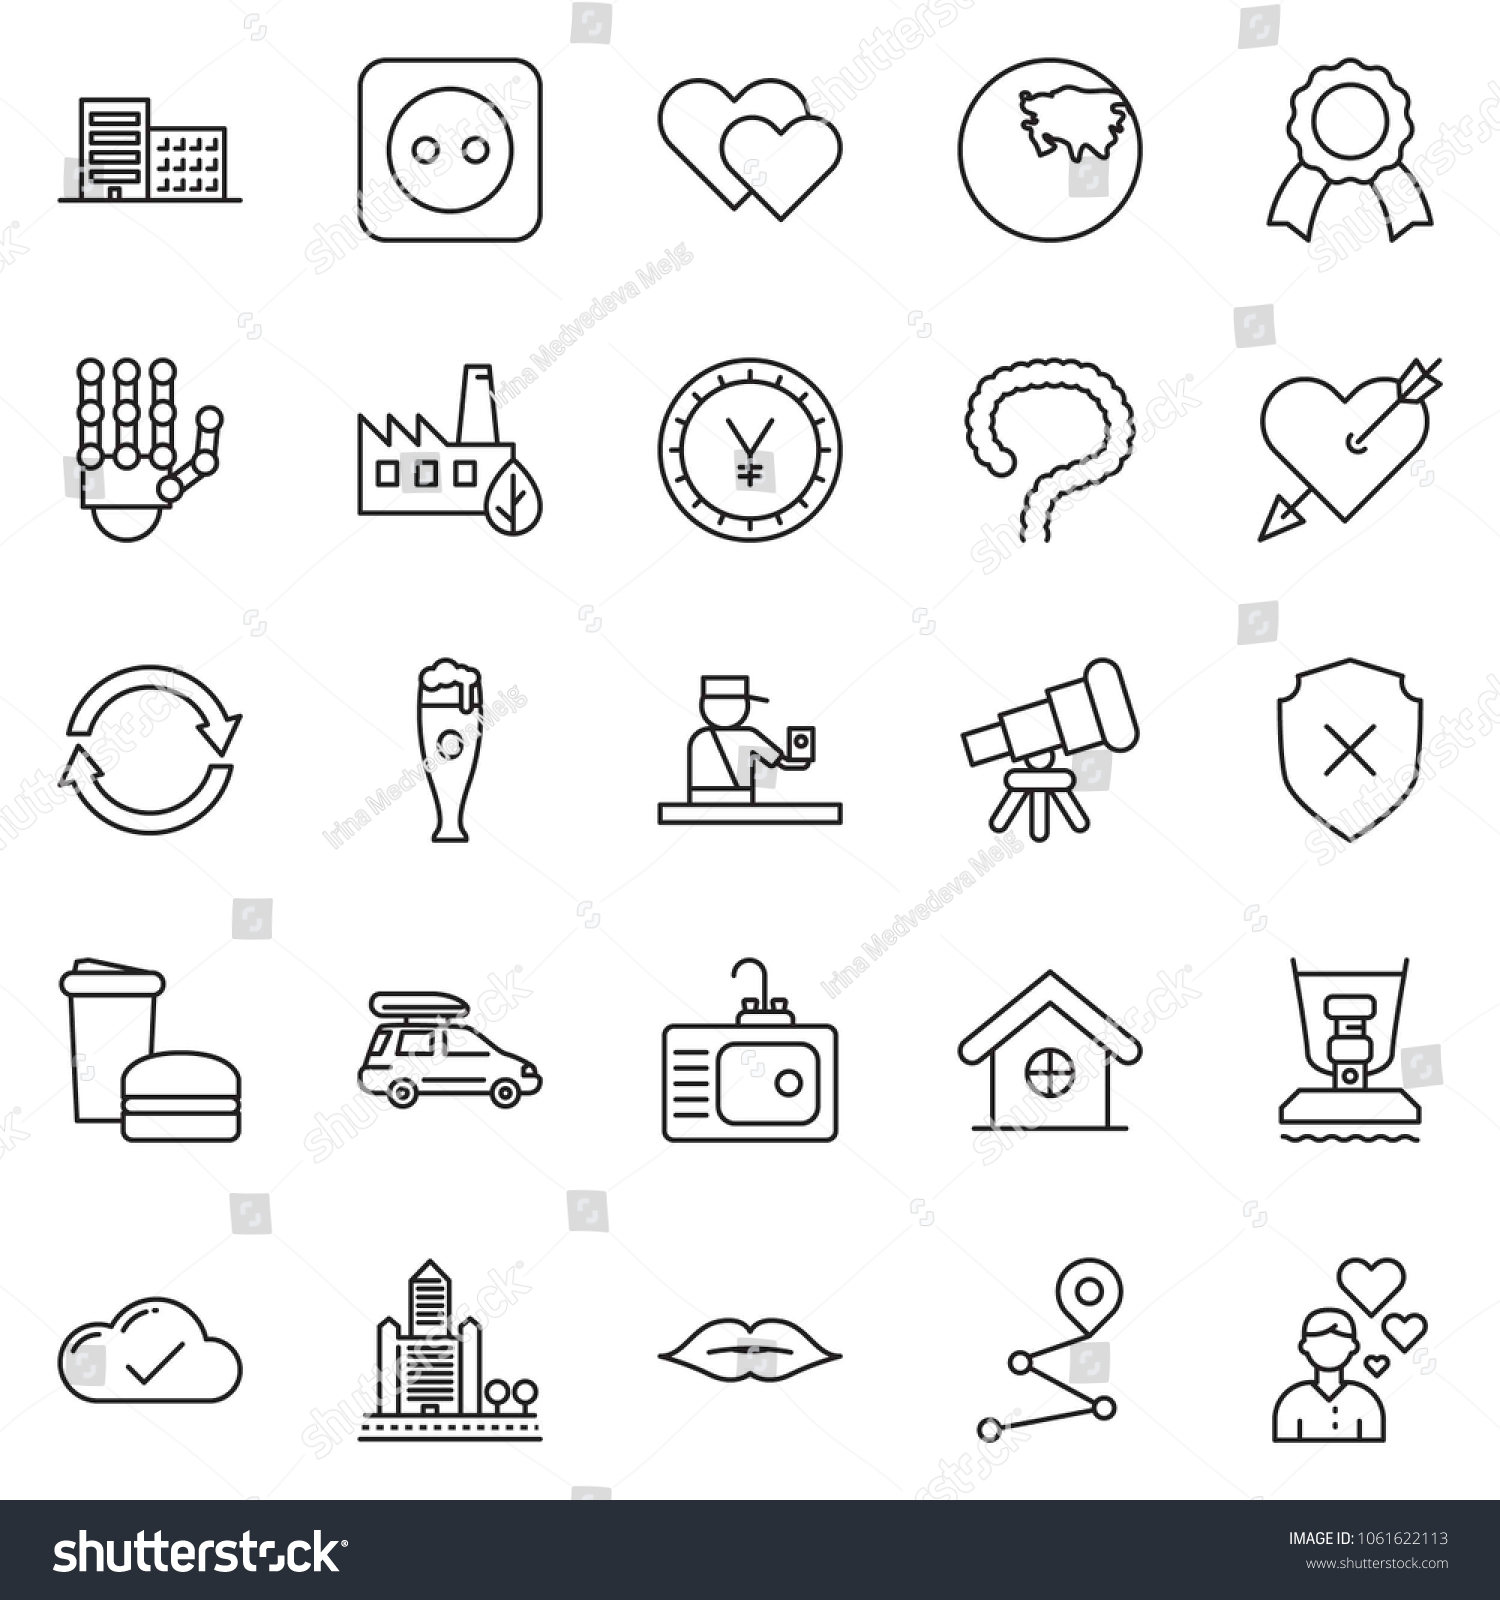 Thin Line Icon Set   Office Building Vector, Yen Sign, Cloud Check, Sink